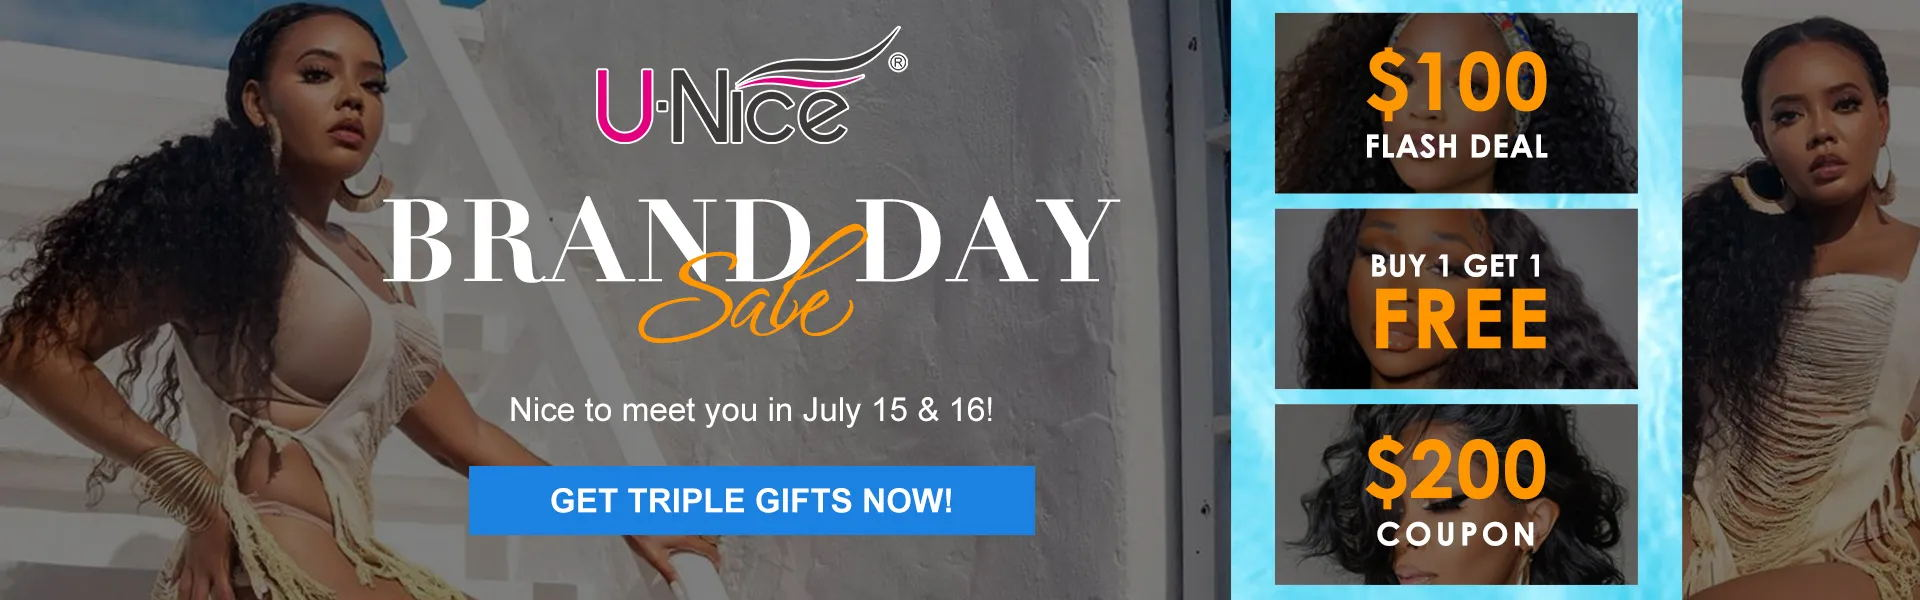 Enjoy special deals on UNice Super Brand Day Sale